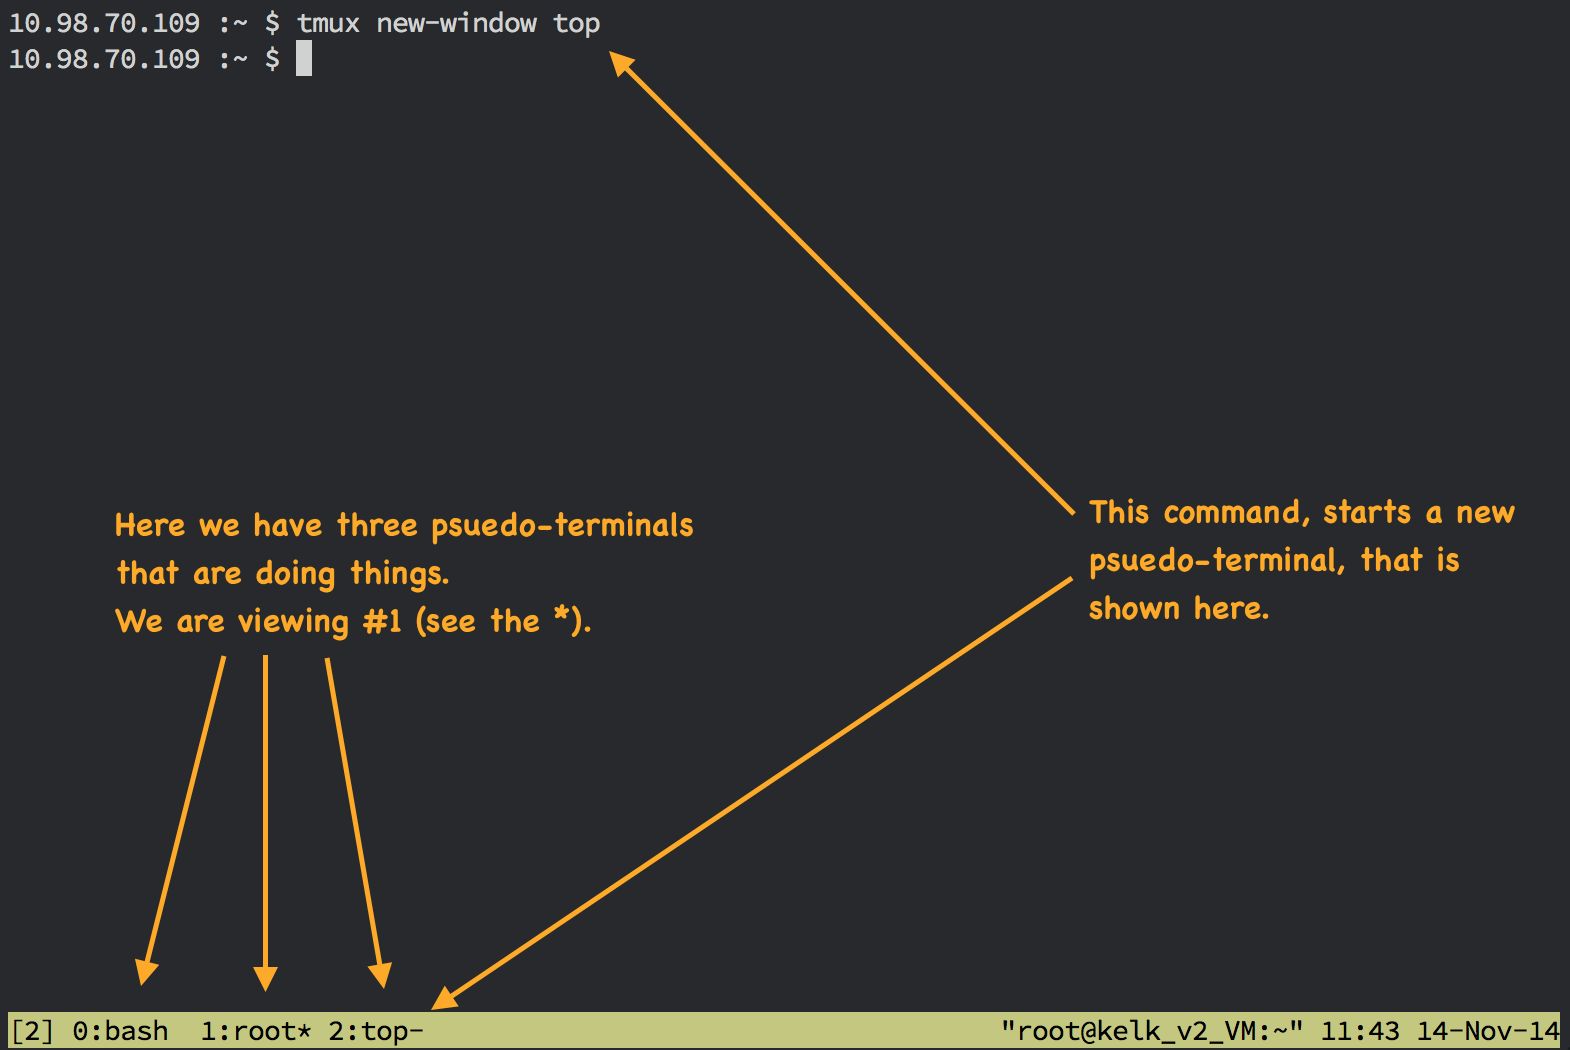 TMUX: My Getting Started Guide